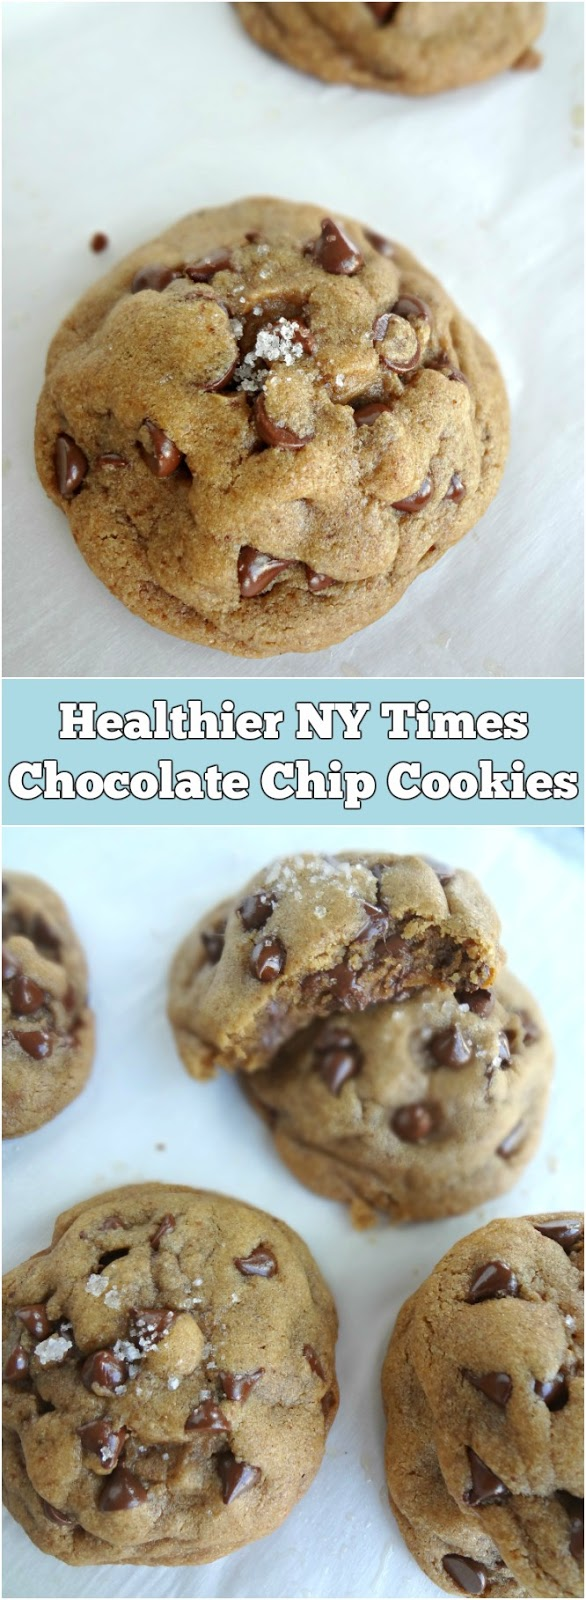 Healthier NY Times Chocolate Chip Cookies